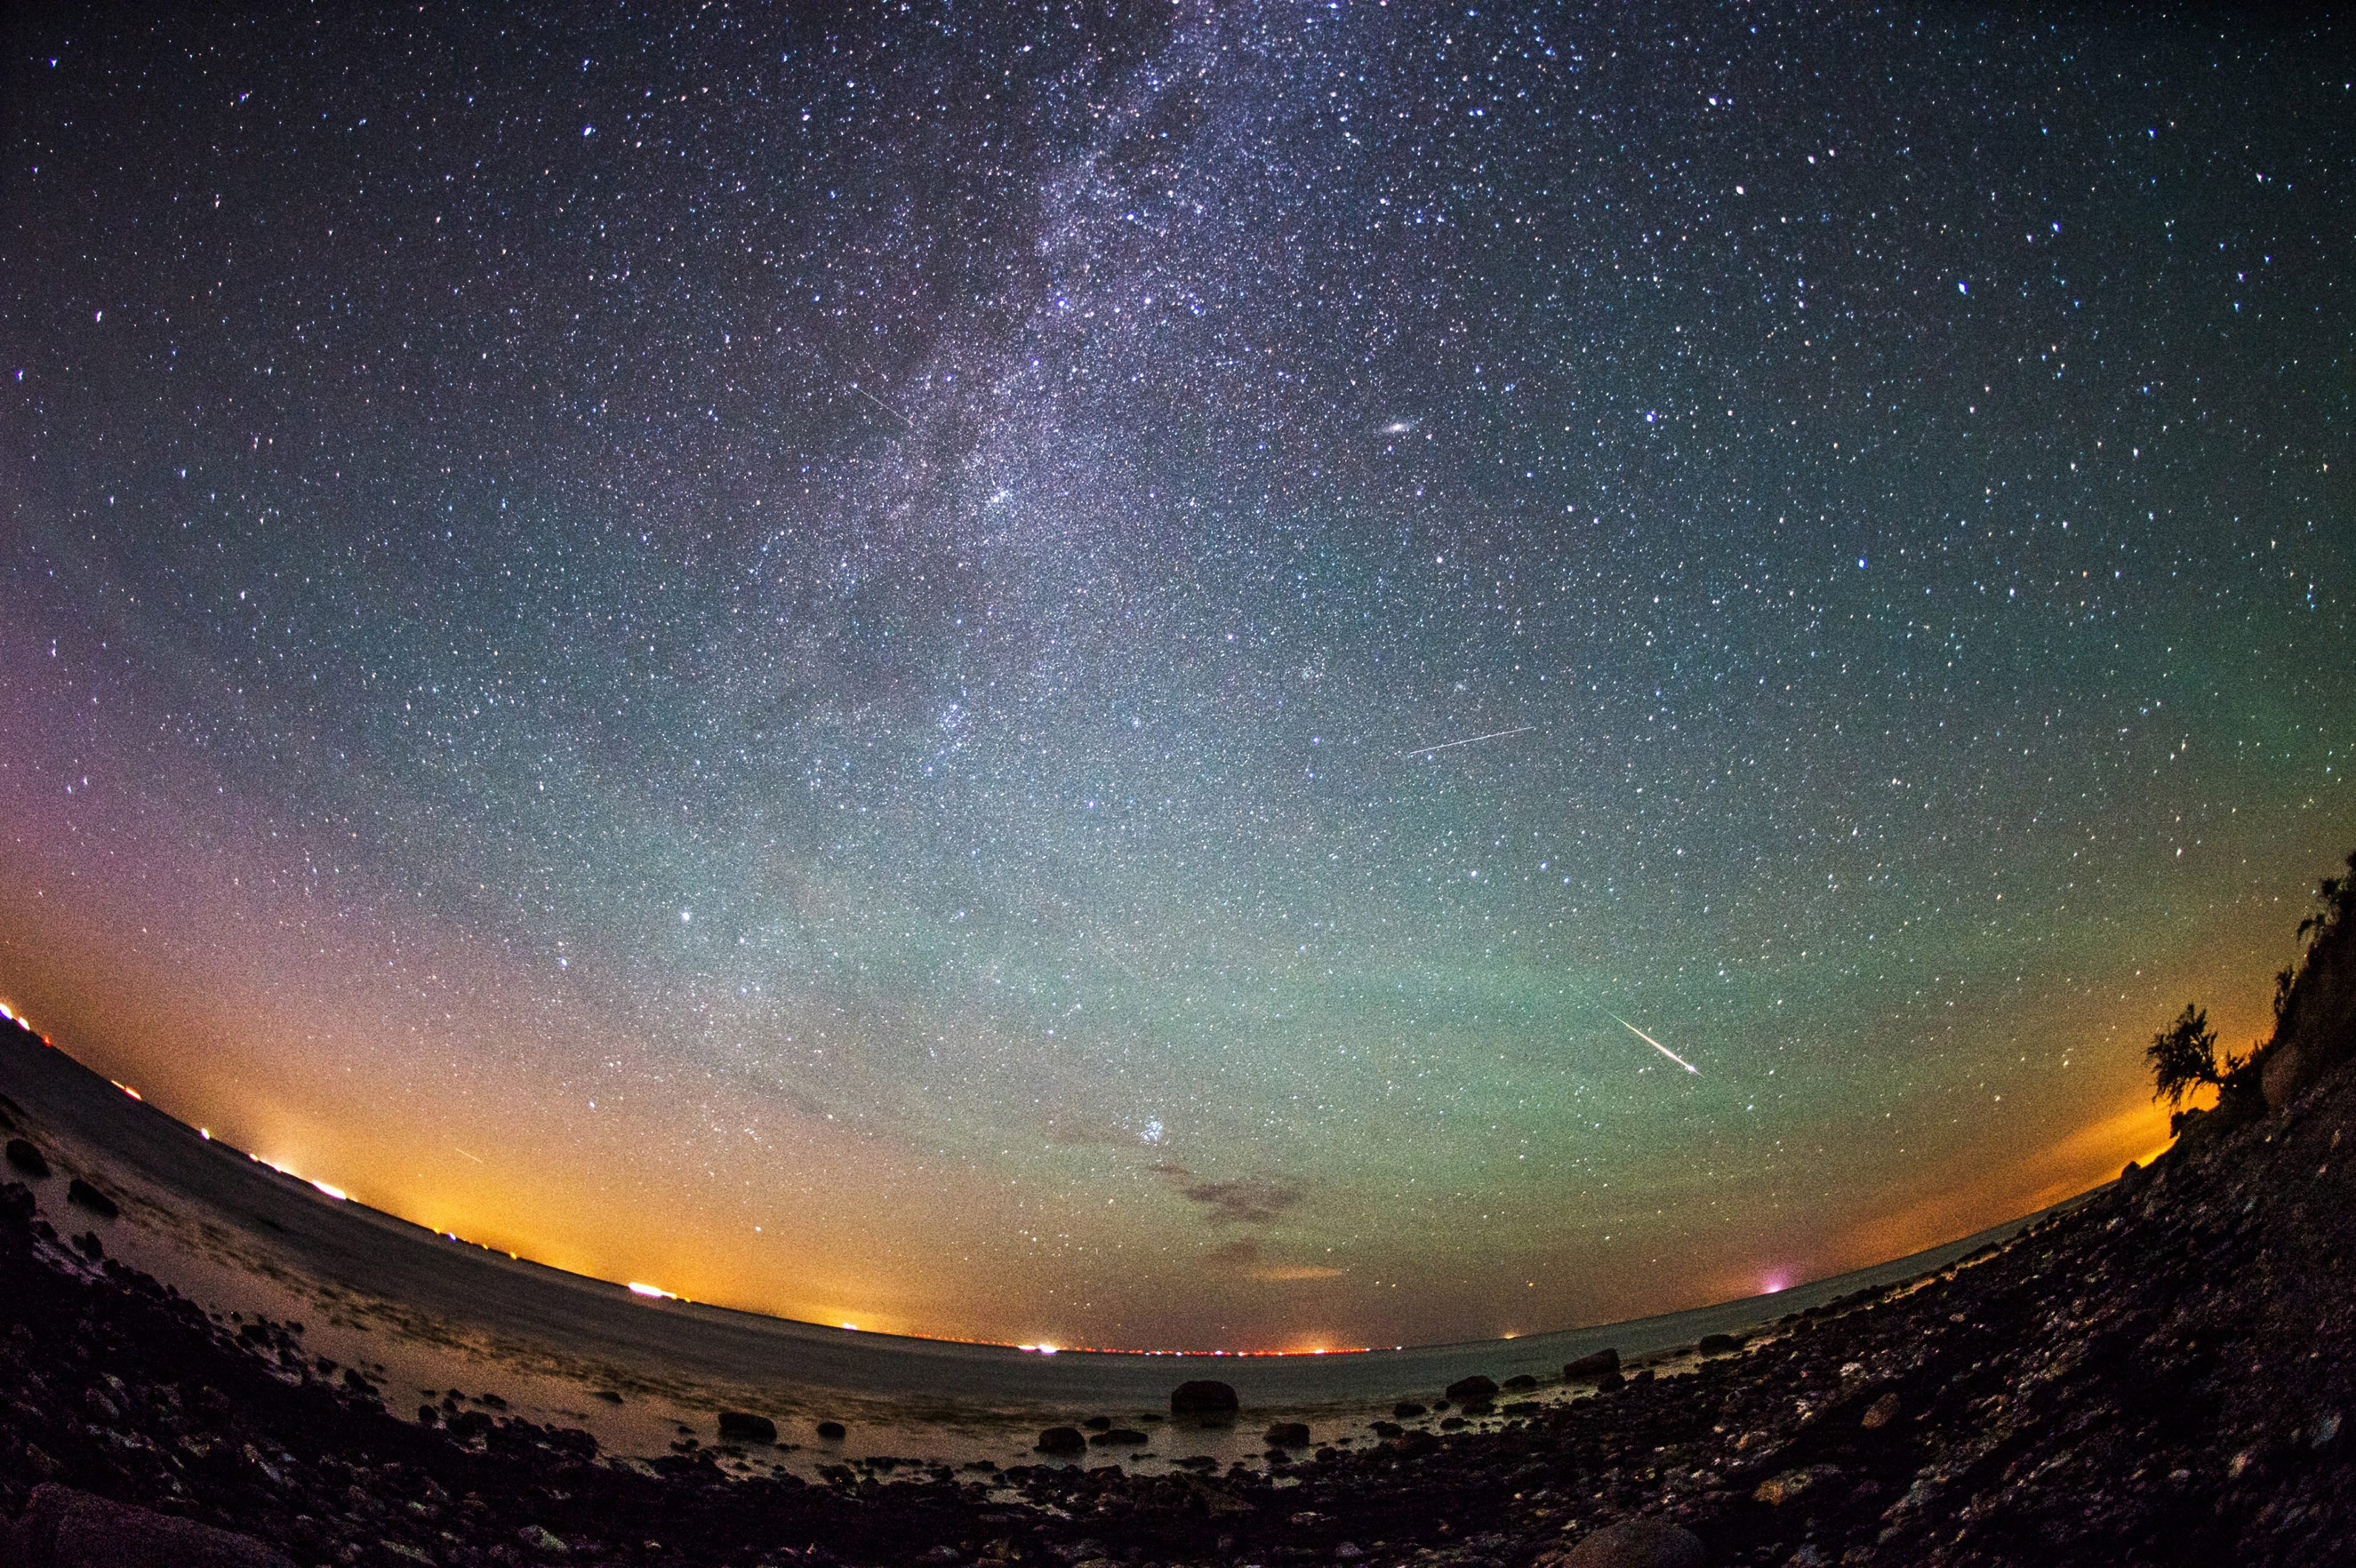 The Perseid meteor shower alongside the Milky Way over the German island of Fehmarn on Aug. 13, 2015.